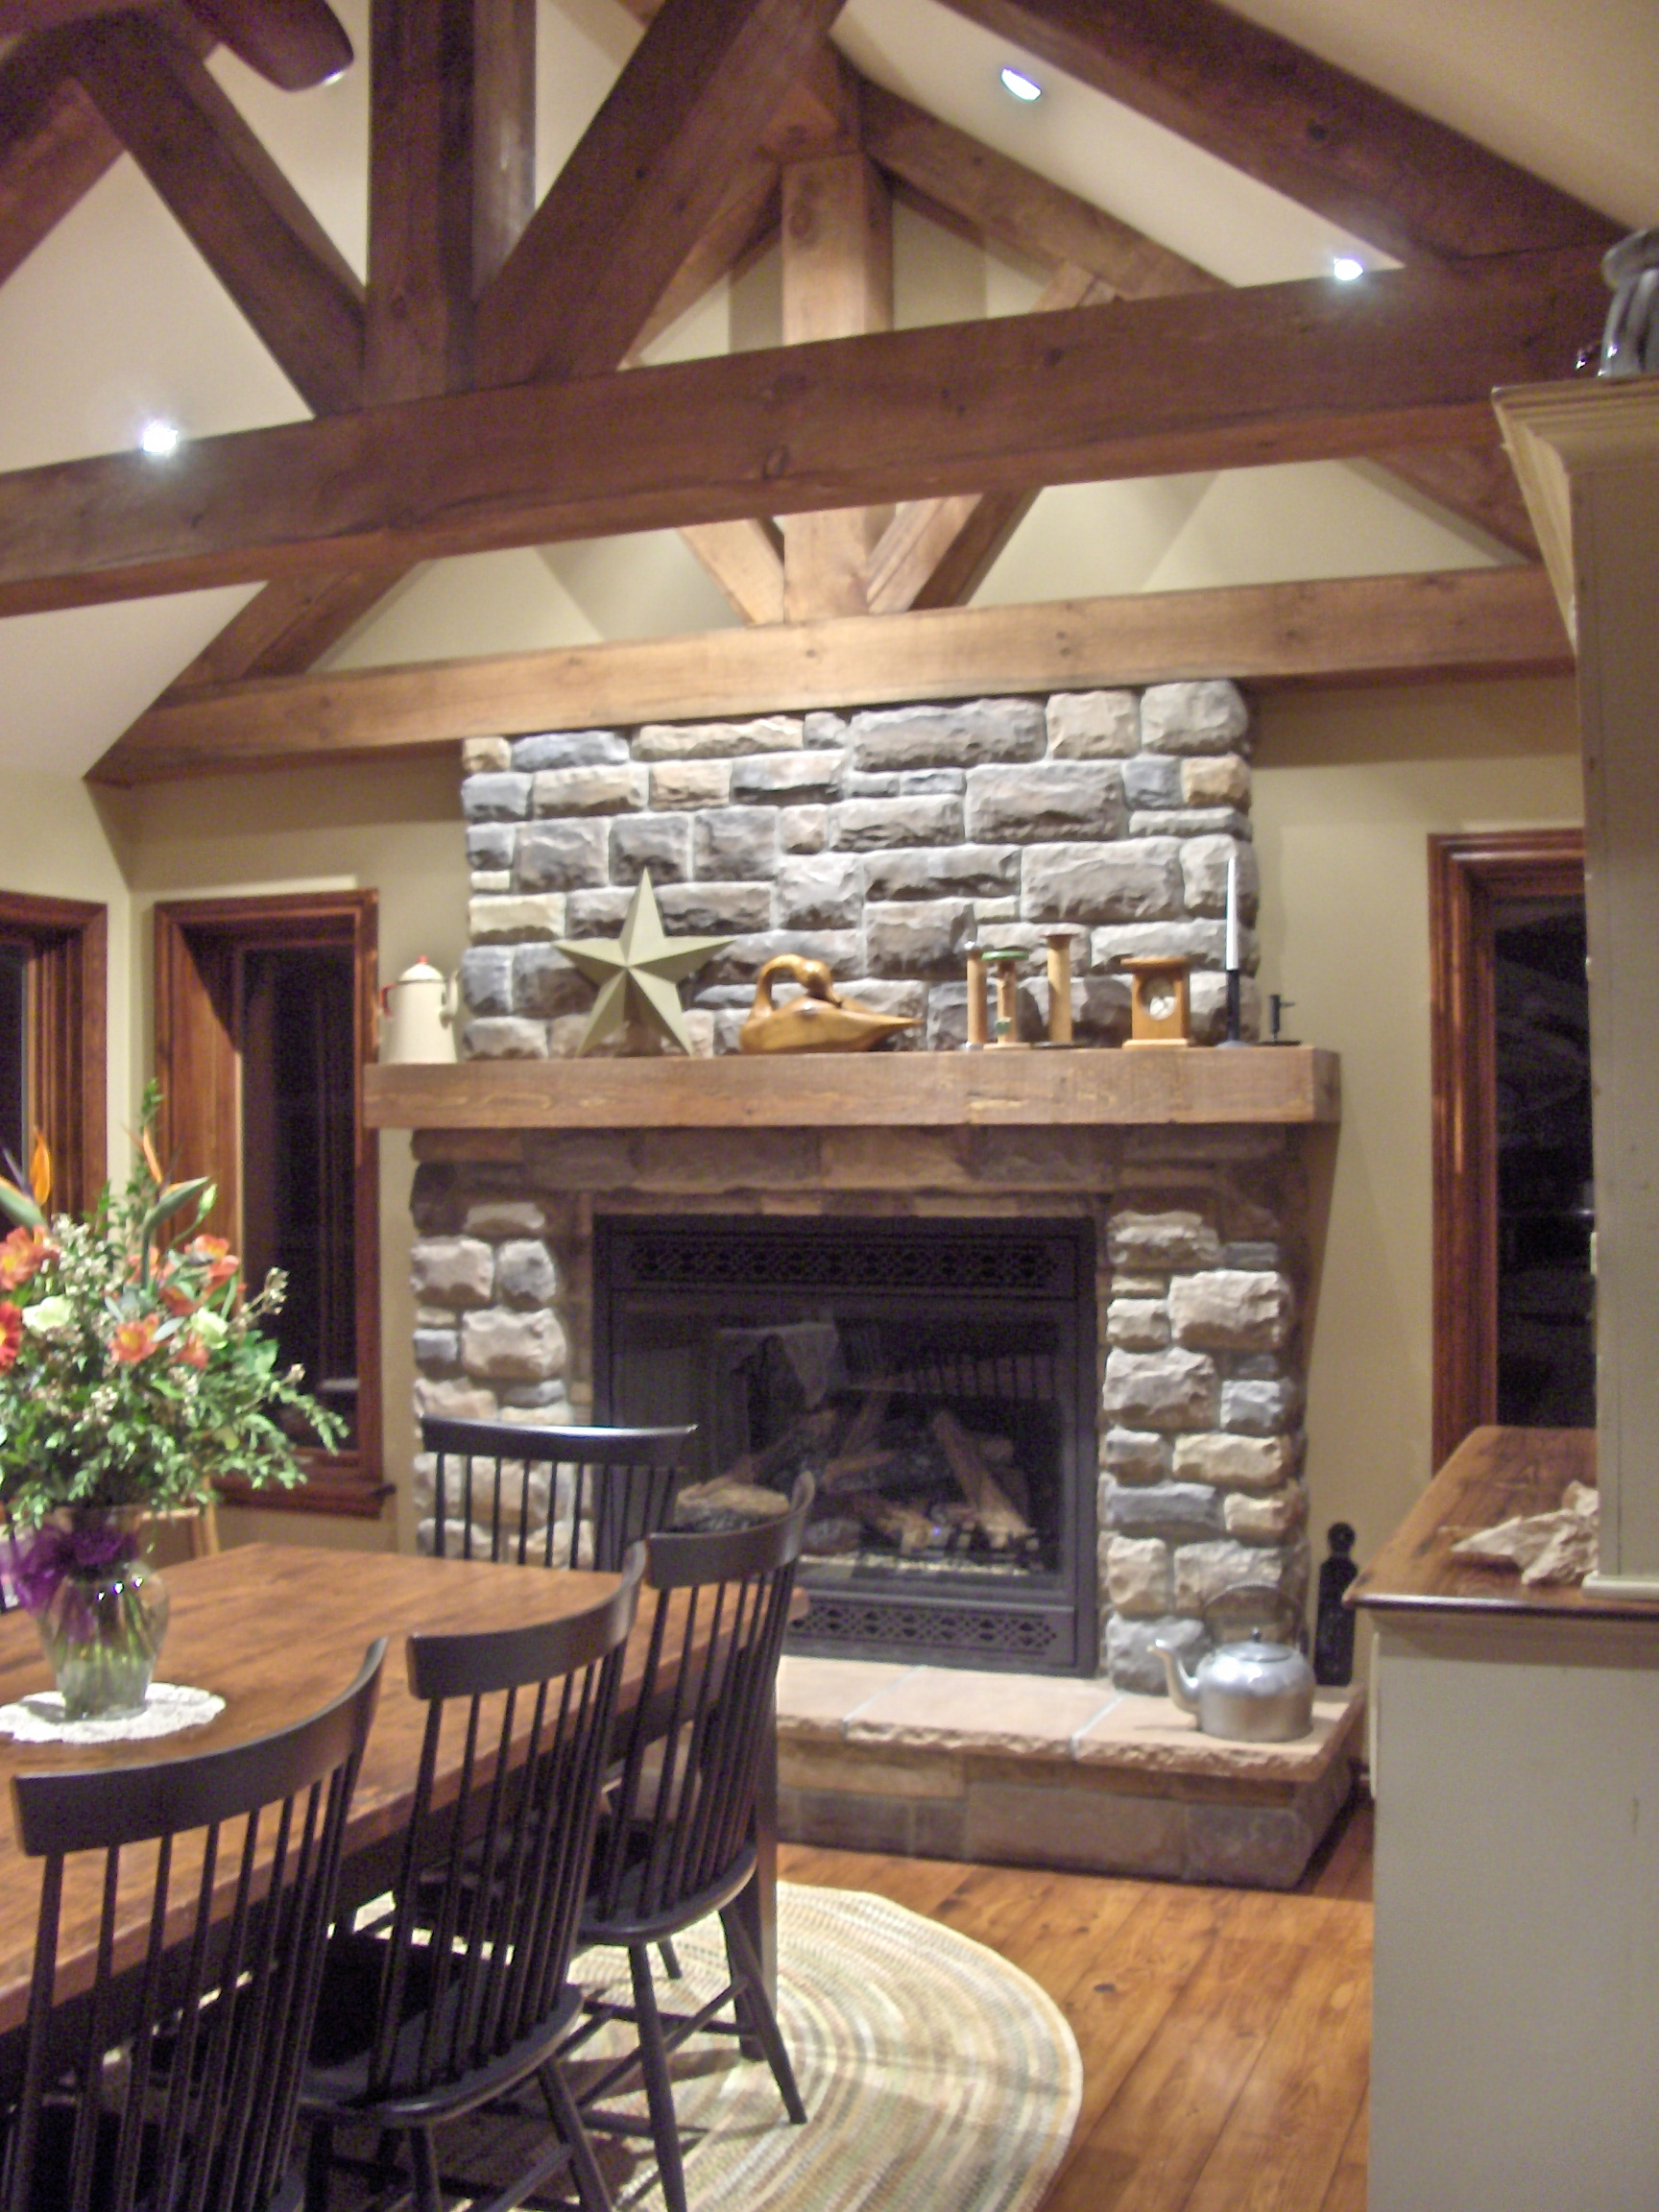 Stone selex of toronto presents interior stone fireplace for Interior fireplaces designs